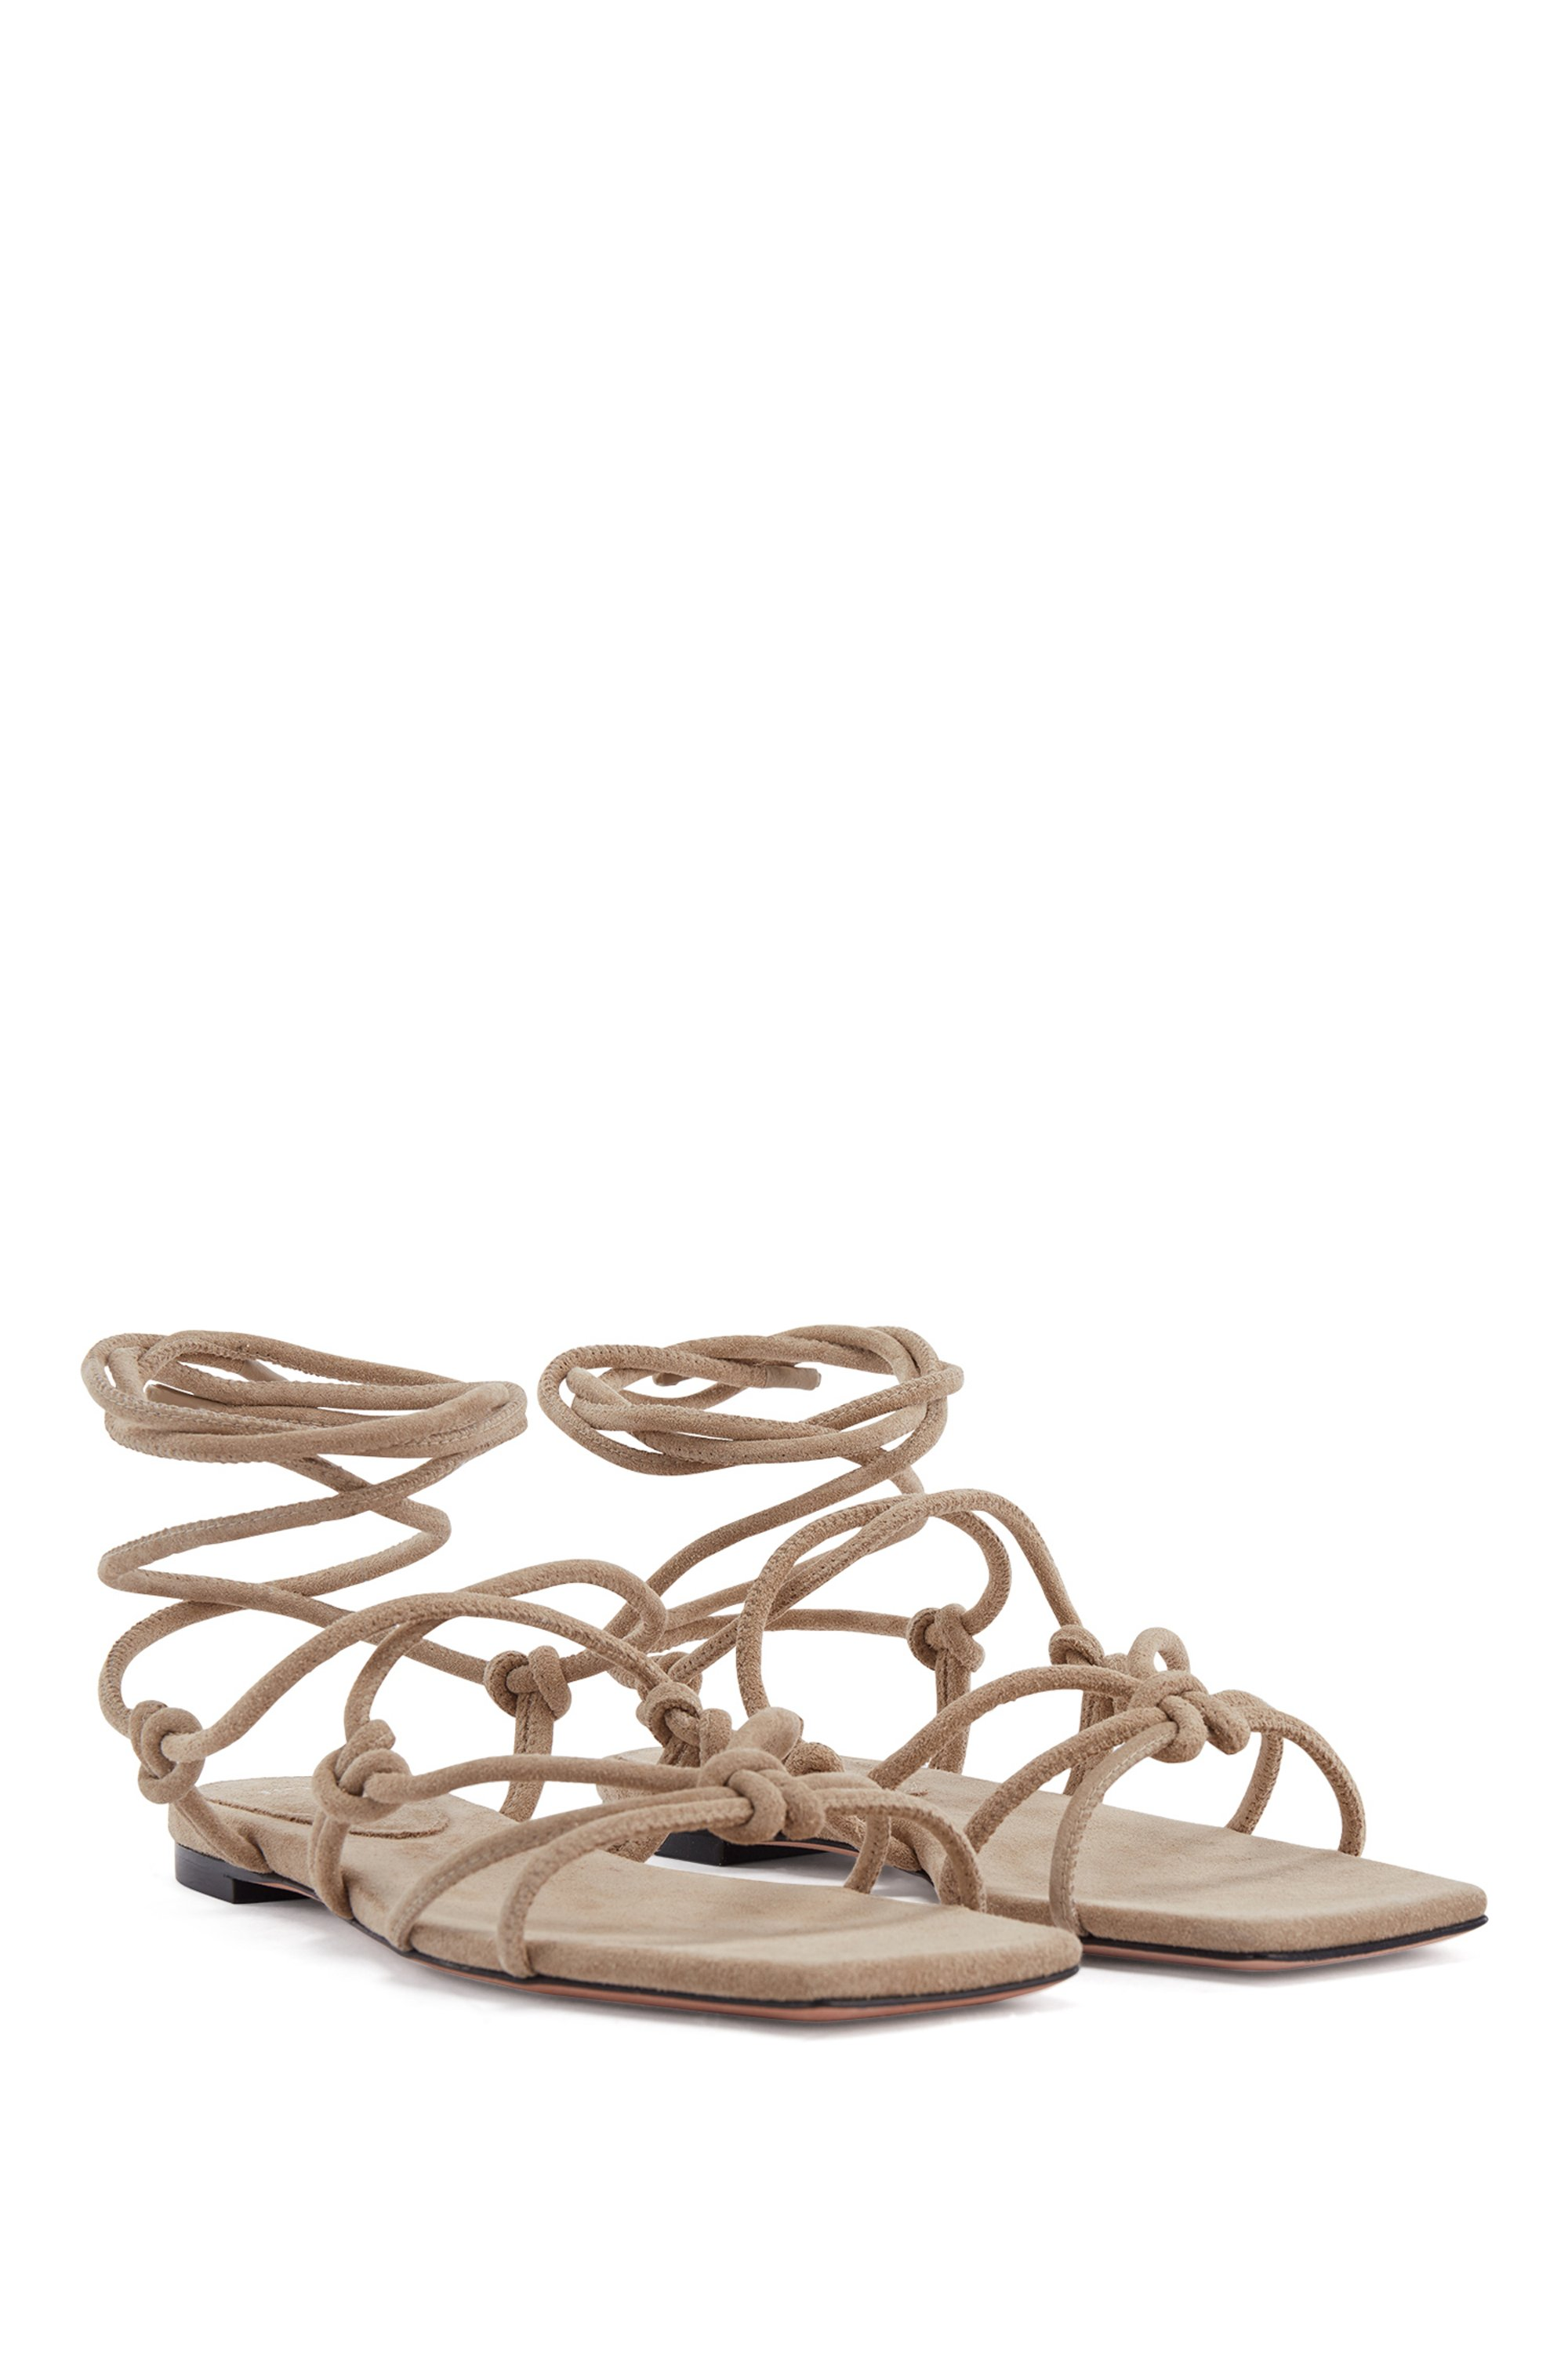 Flat sandals in Italian suede with tie-up straps